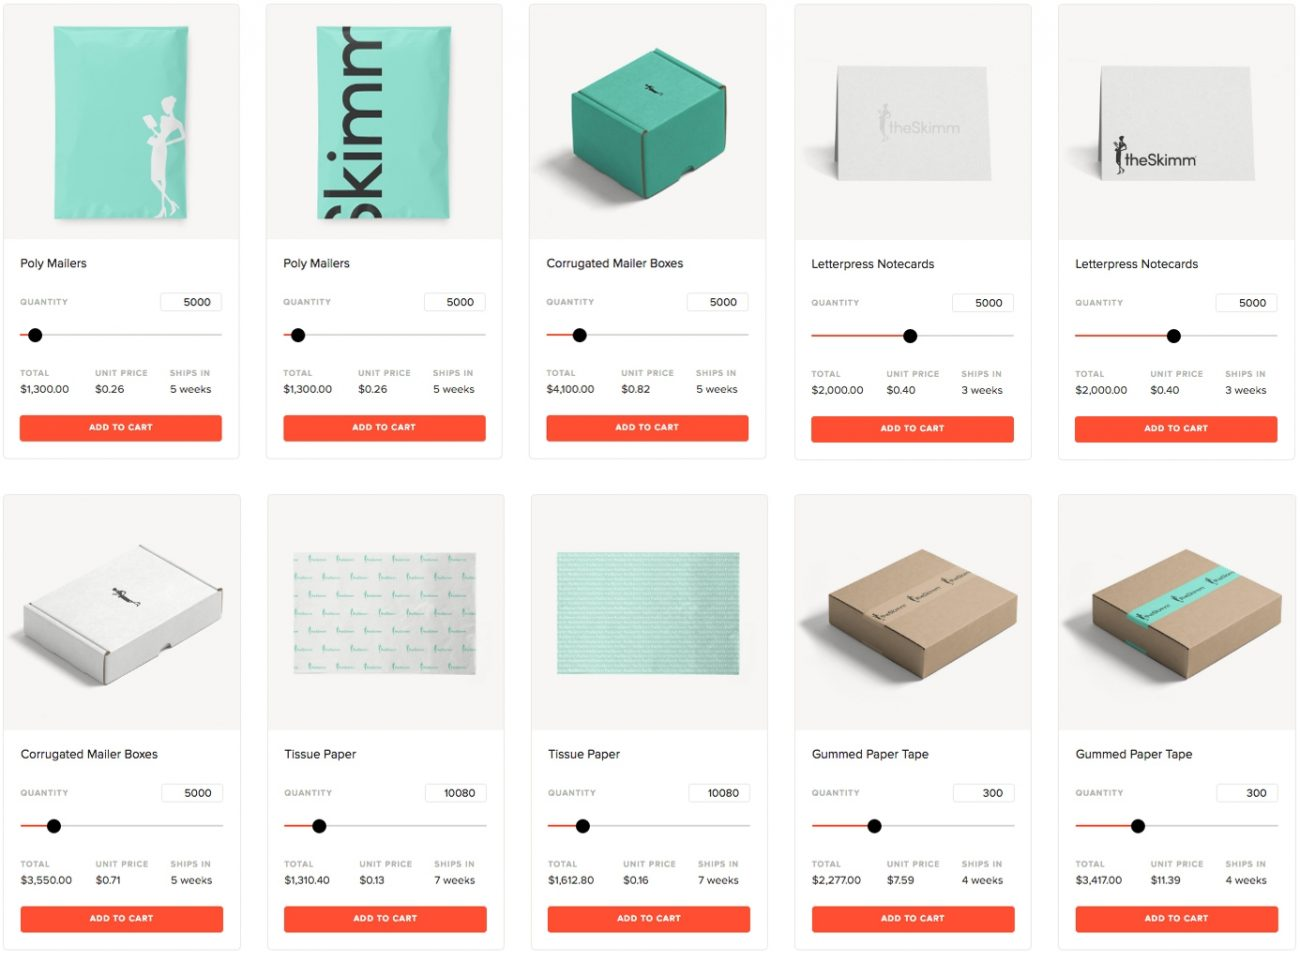 Plan Your Packaging With the Lumi Dashboard